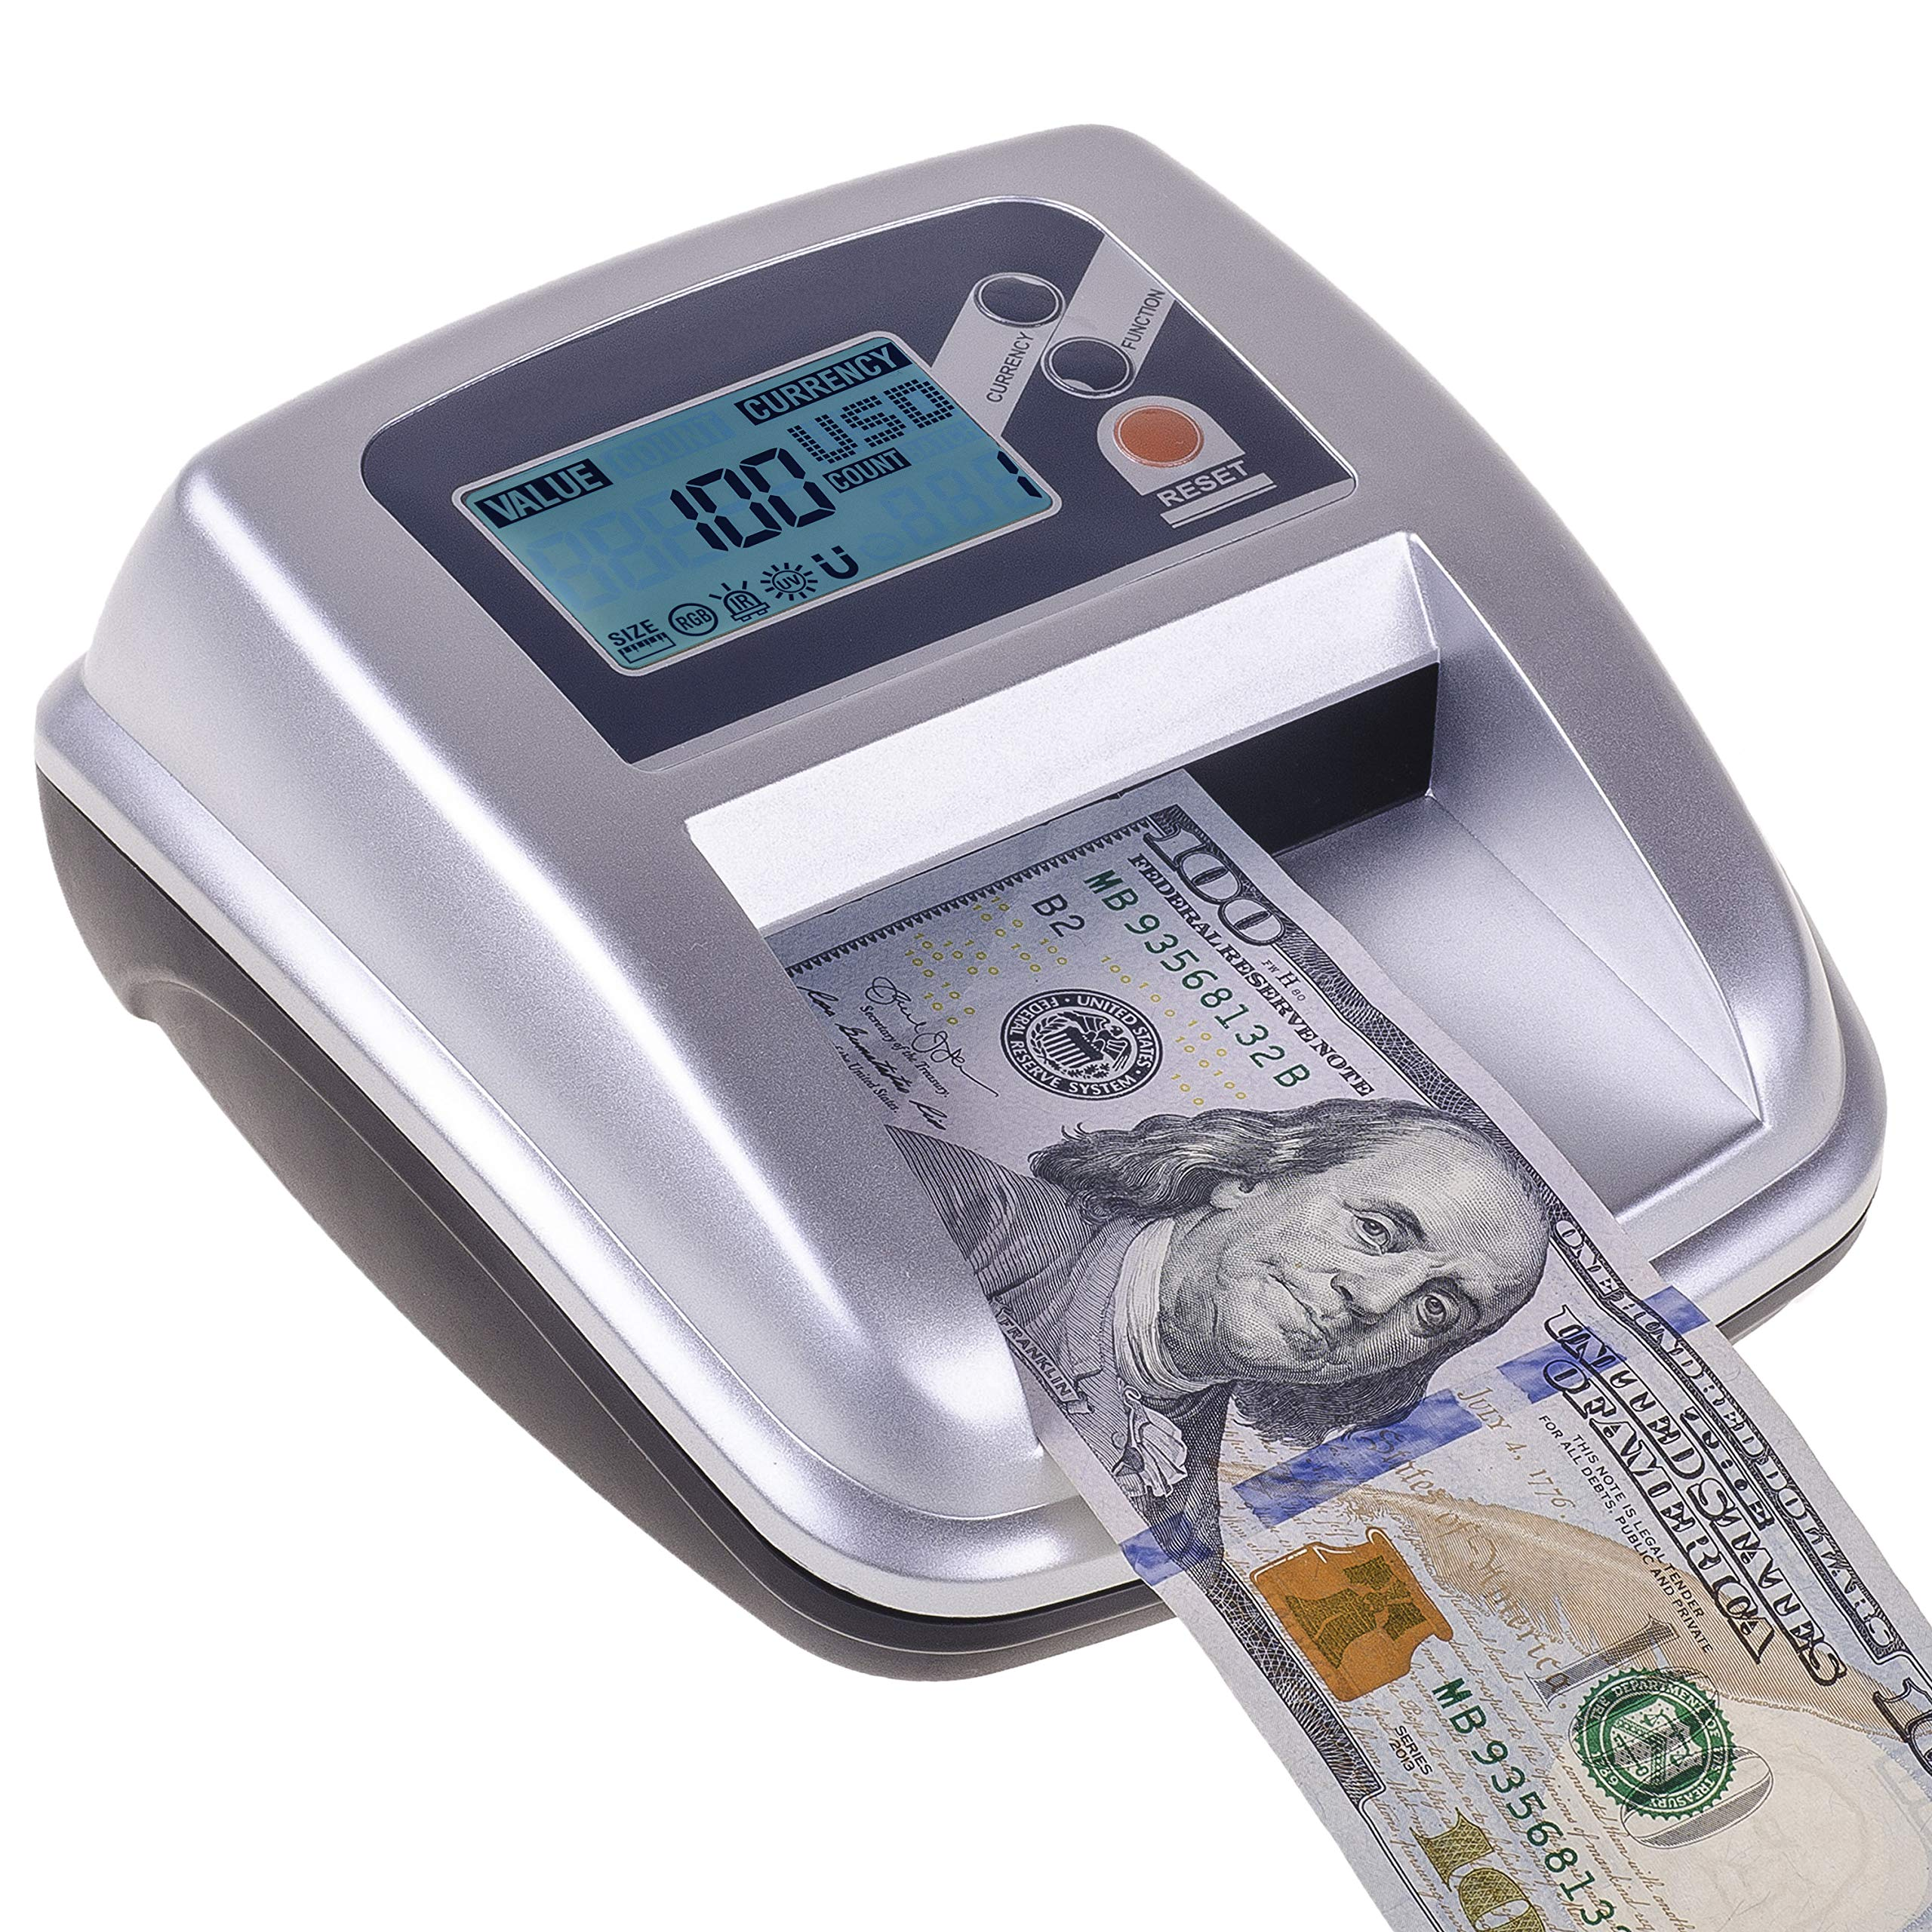 New Counterfeit Bill Detector & Counter with MG/UV/IR/Size/MS Detection.